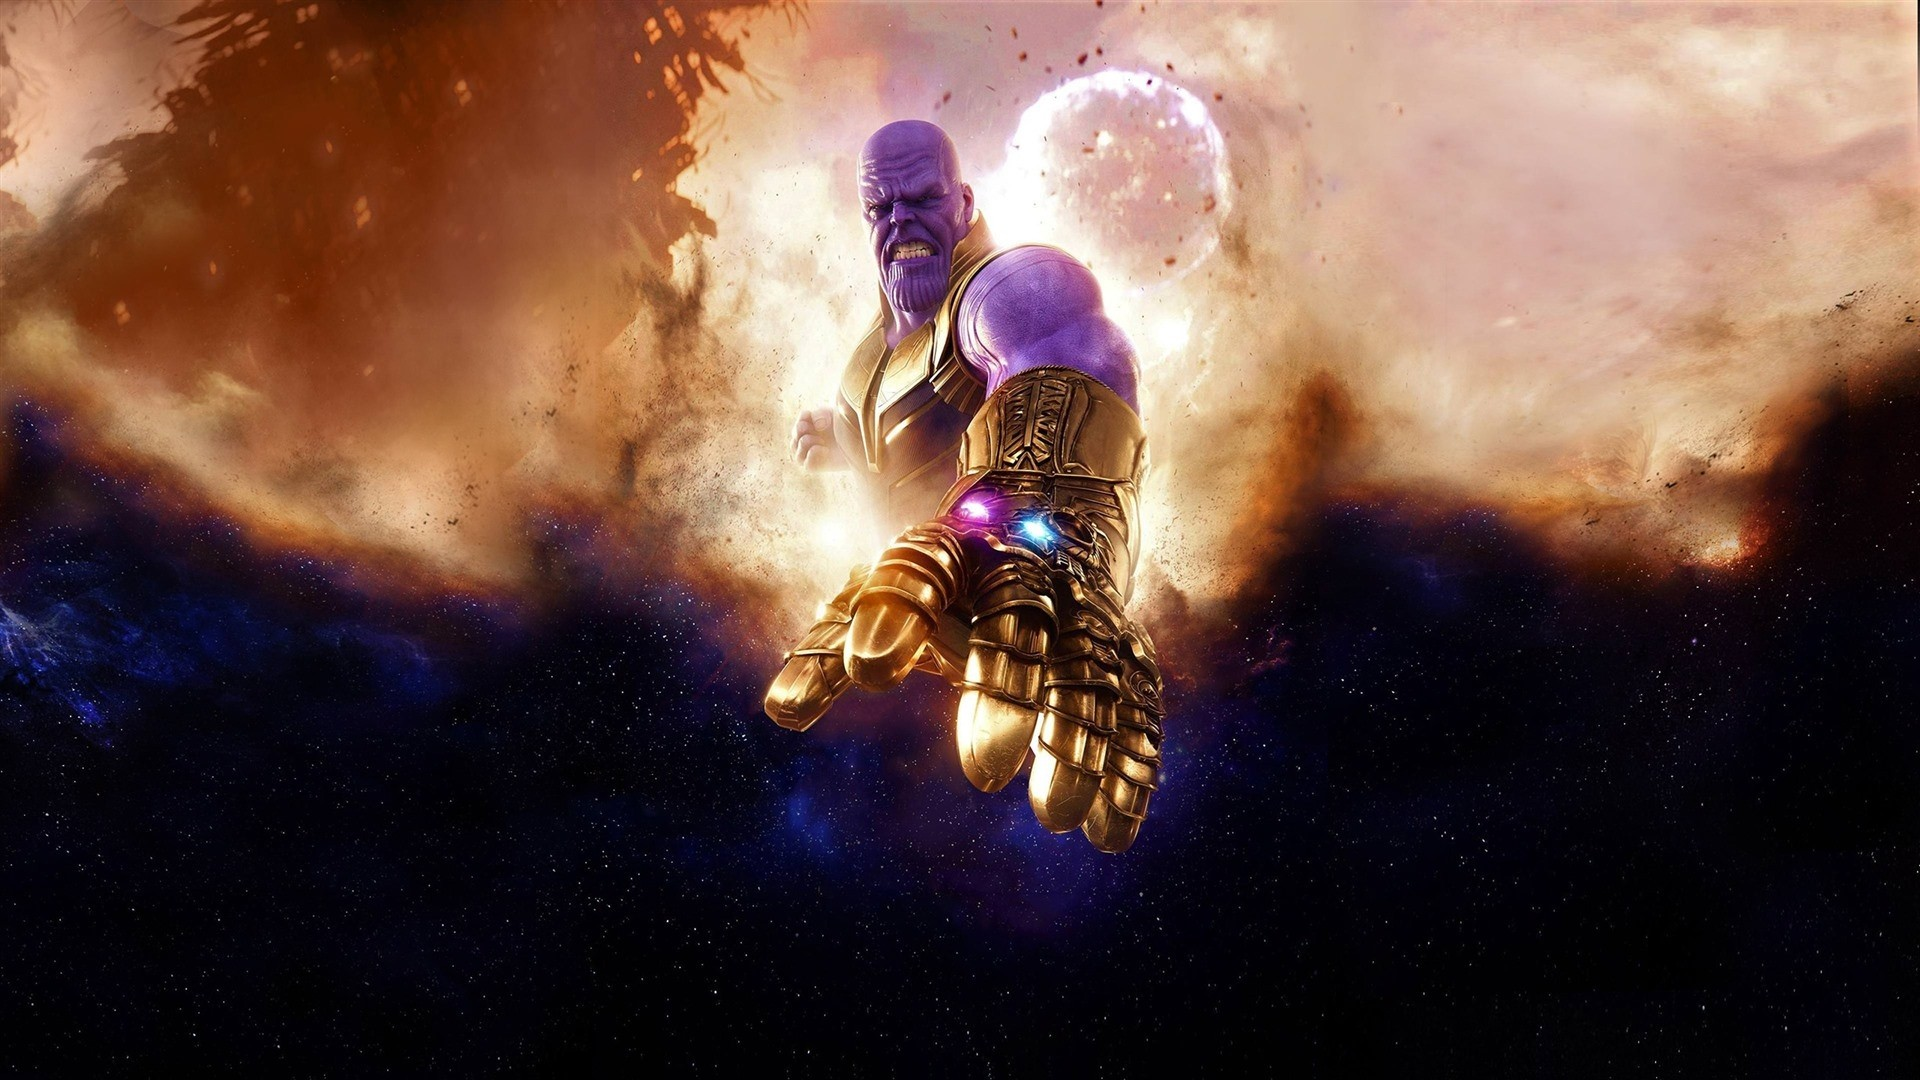 Thanos Wallpaper for pc